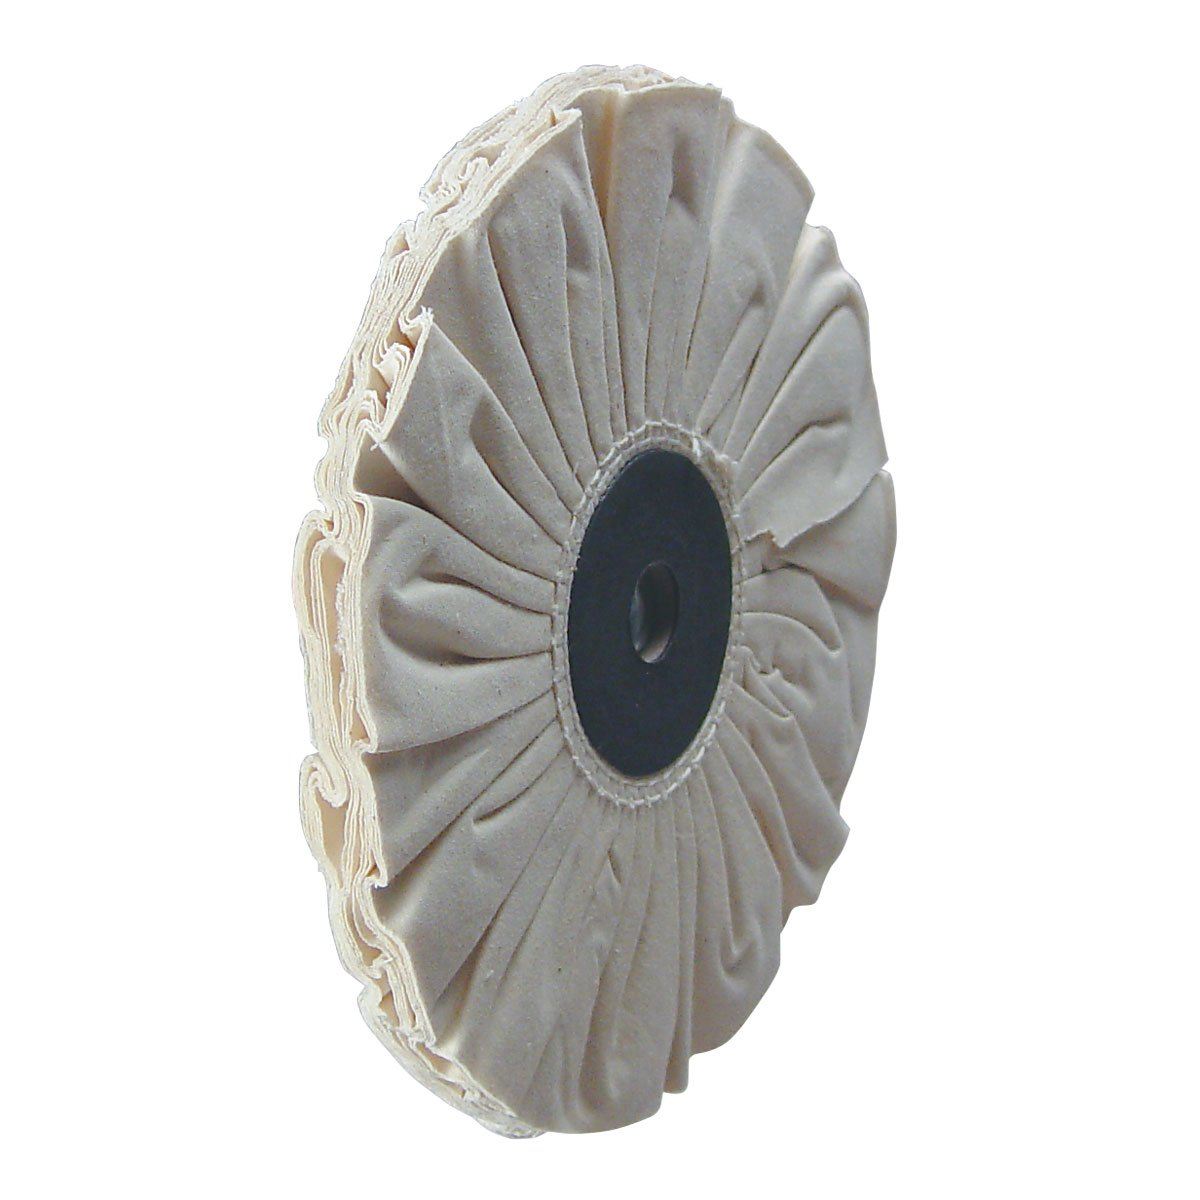 10'' Compressed Buffing Wheels 8455-41, Fits 7/8'' Arbor Hole, Made in USA